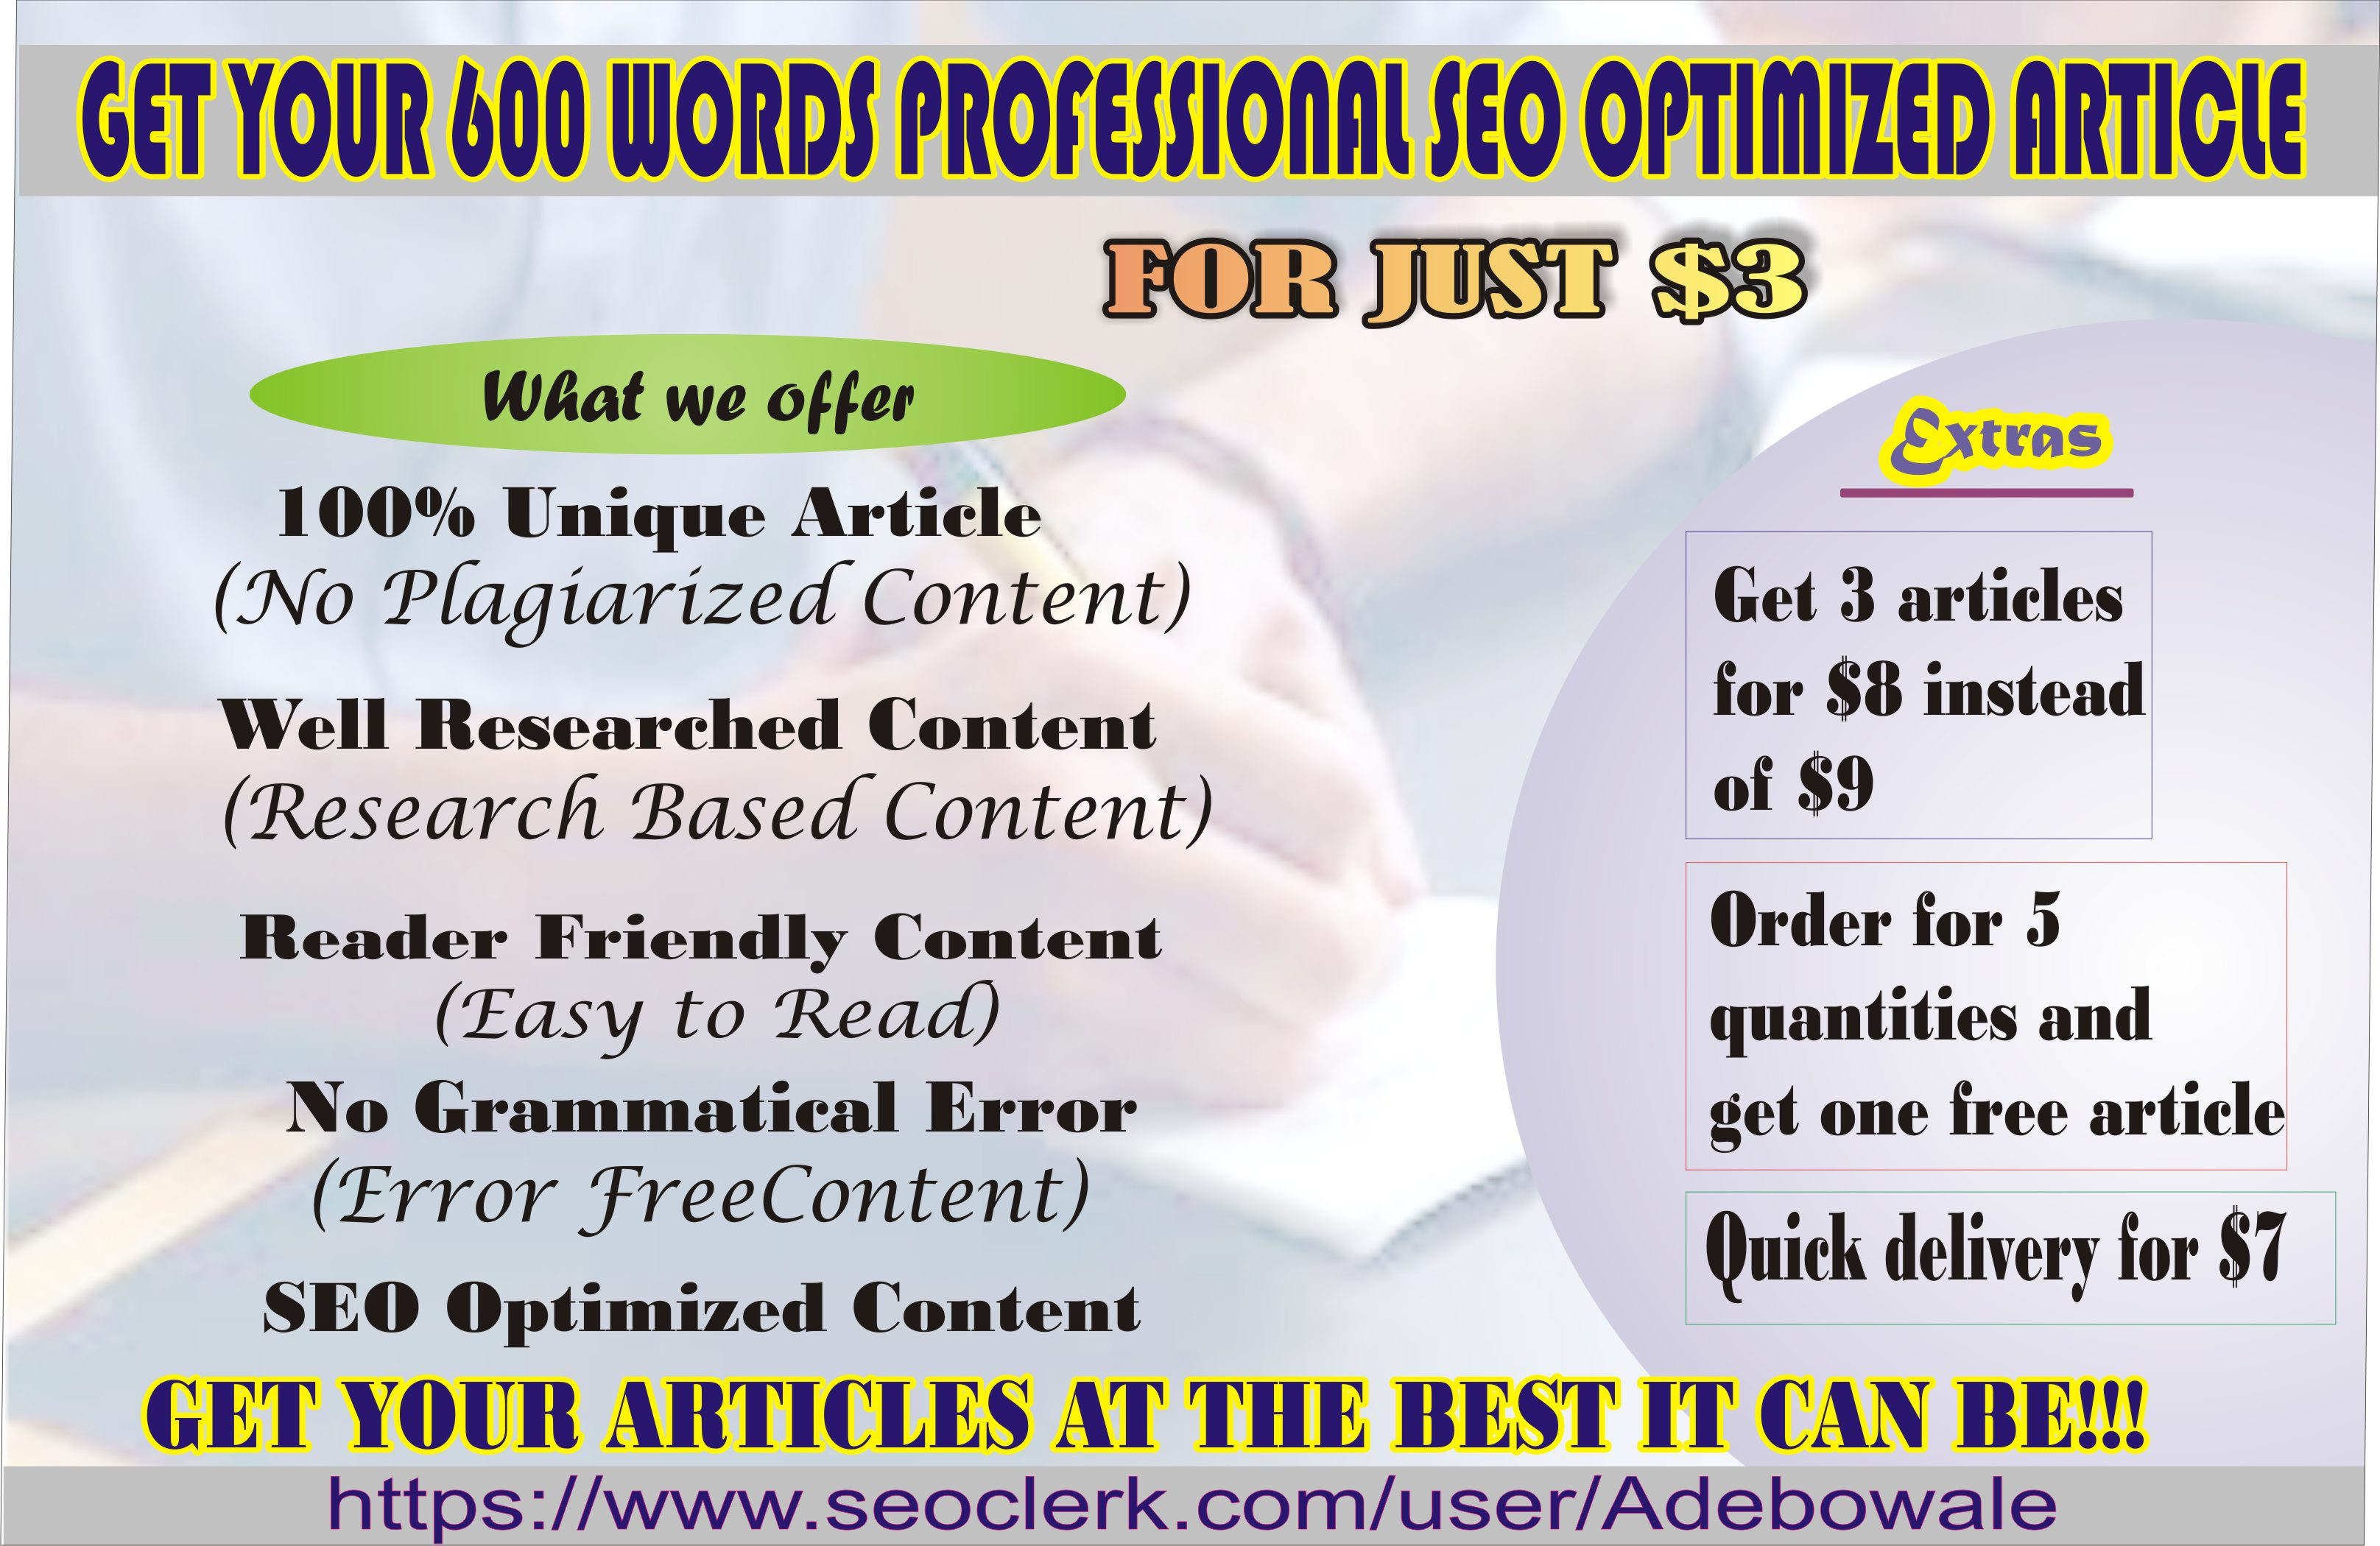 I will write a professional 600 words SEO optimized unique article/blogpost for your website/blog